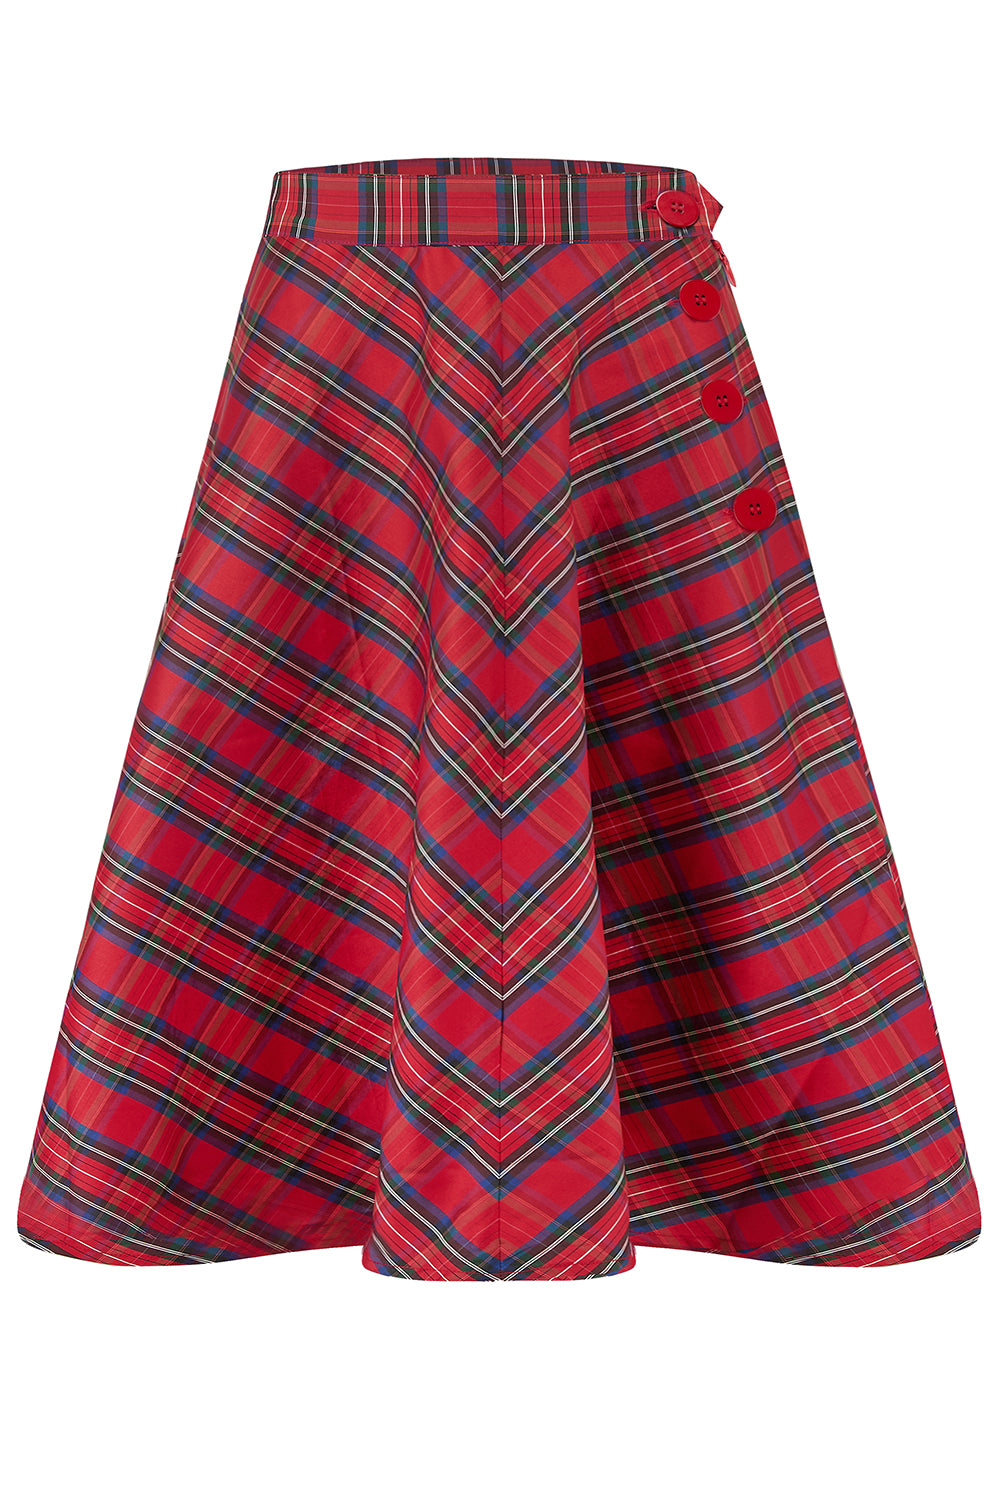 """Isabelle"" Skirt in Red Taffeta Tartan, Classic & Authentic 1940s Vintage Inspired Style Seamstress of Bloomsbury"